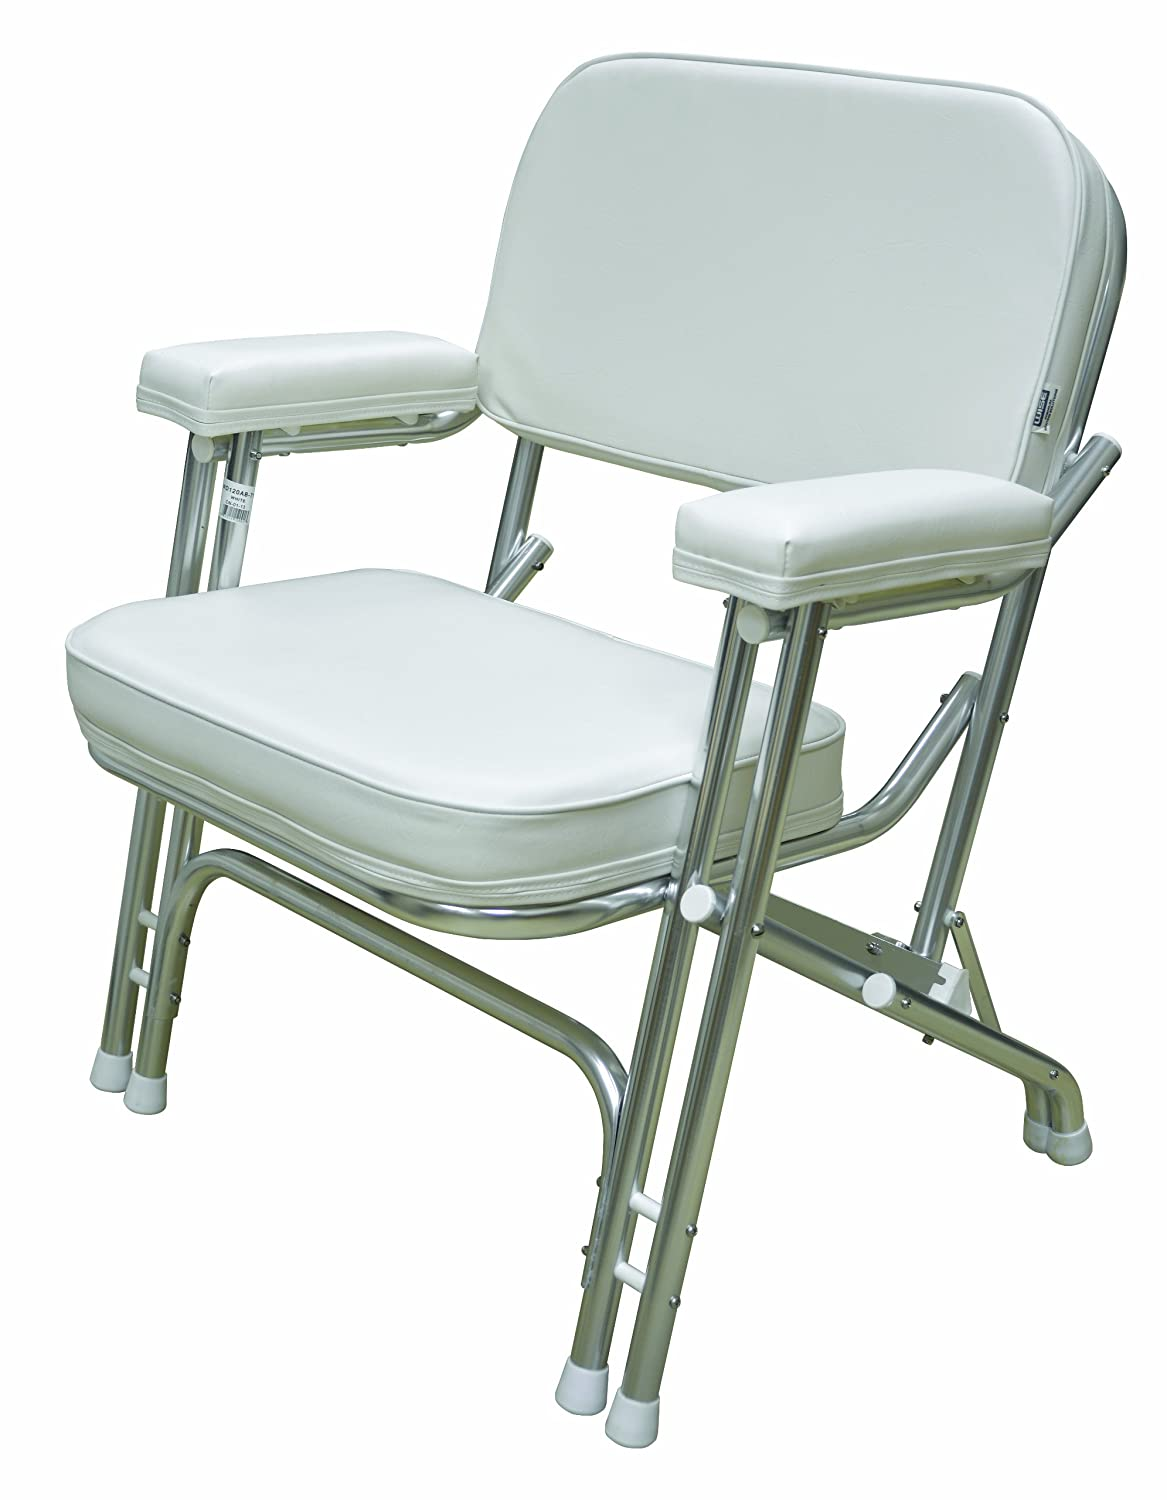 Heavy Duty Patio Chairs For Heavy People